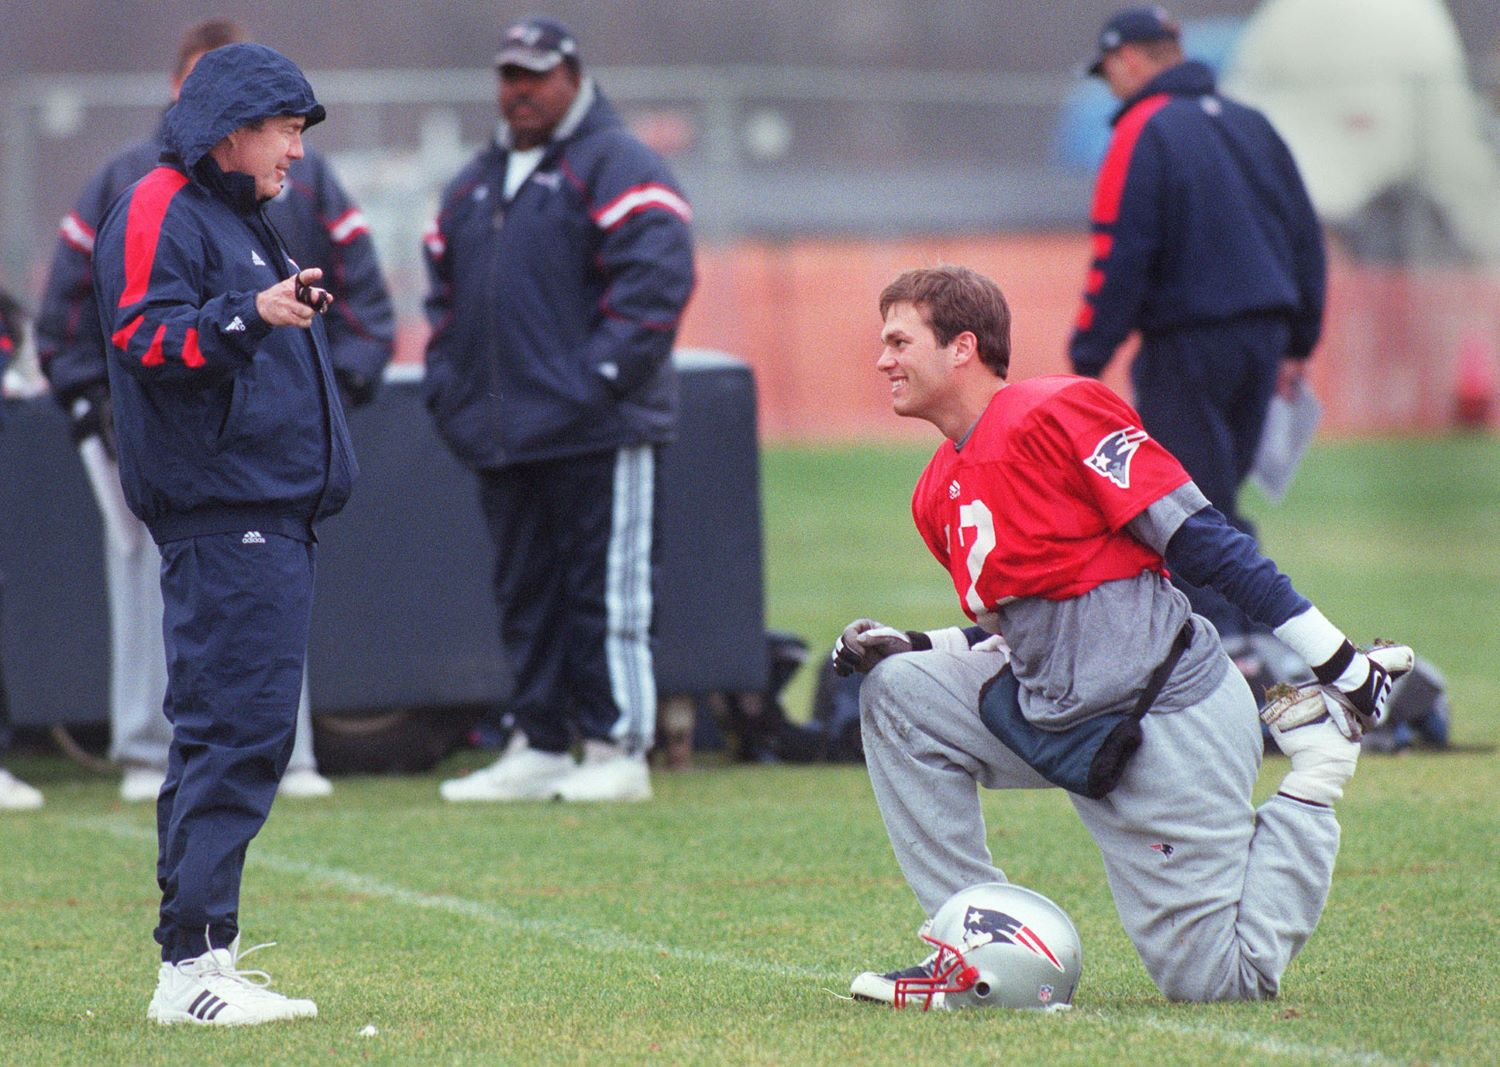 Tampa Bay Buccaneers GM Jason Licht recently exposed exactly what Bill Belichick thought of Tom Brady at the time of the 2000 NFL draft.